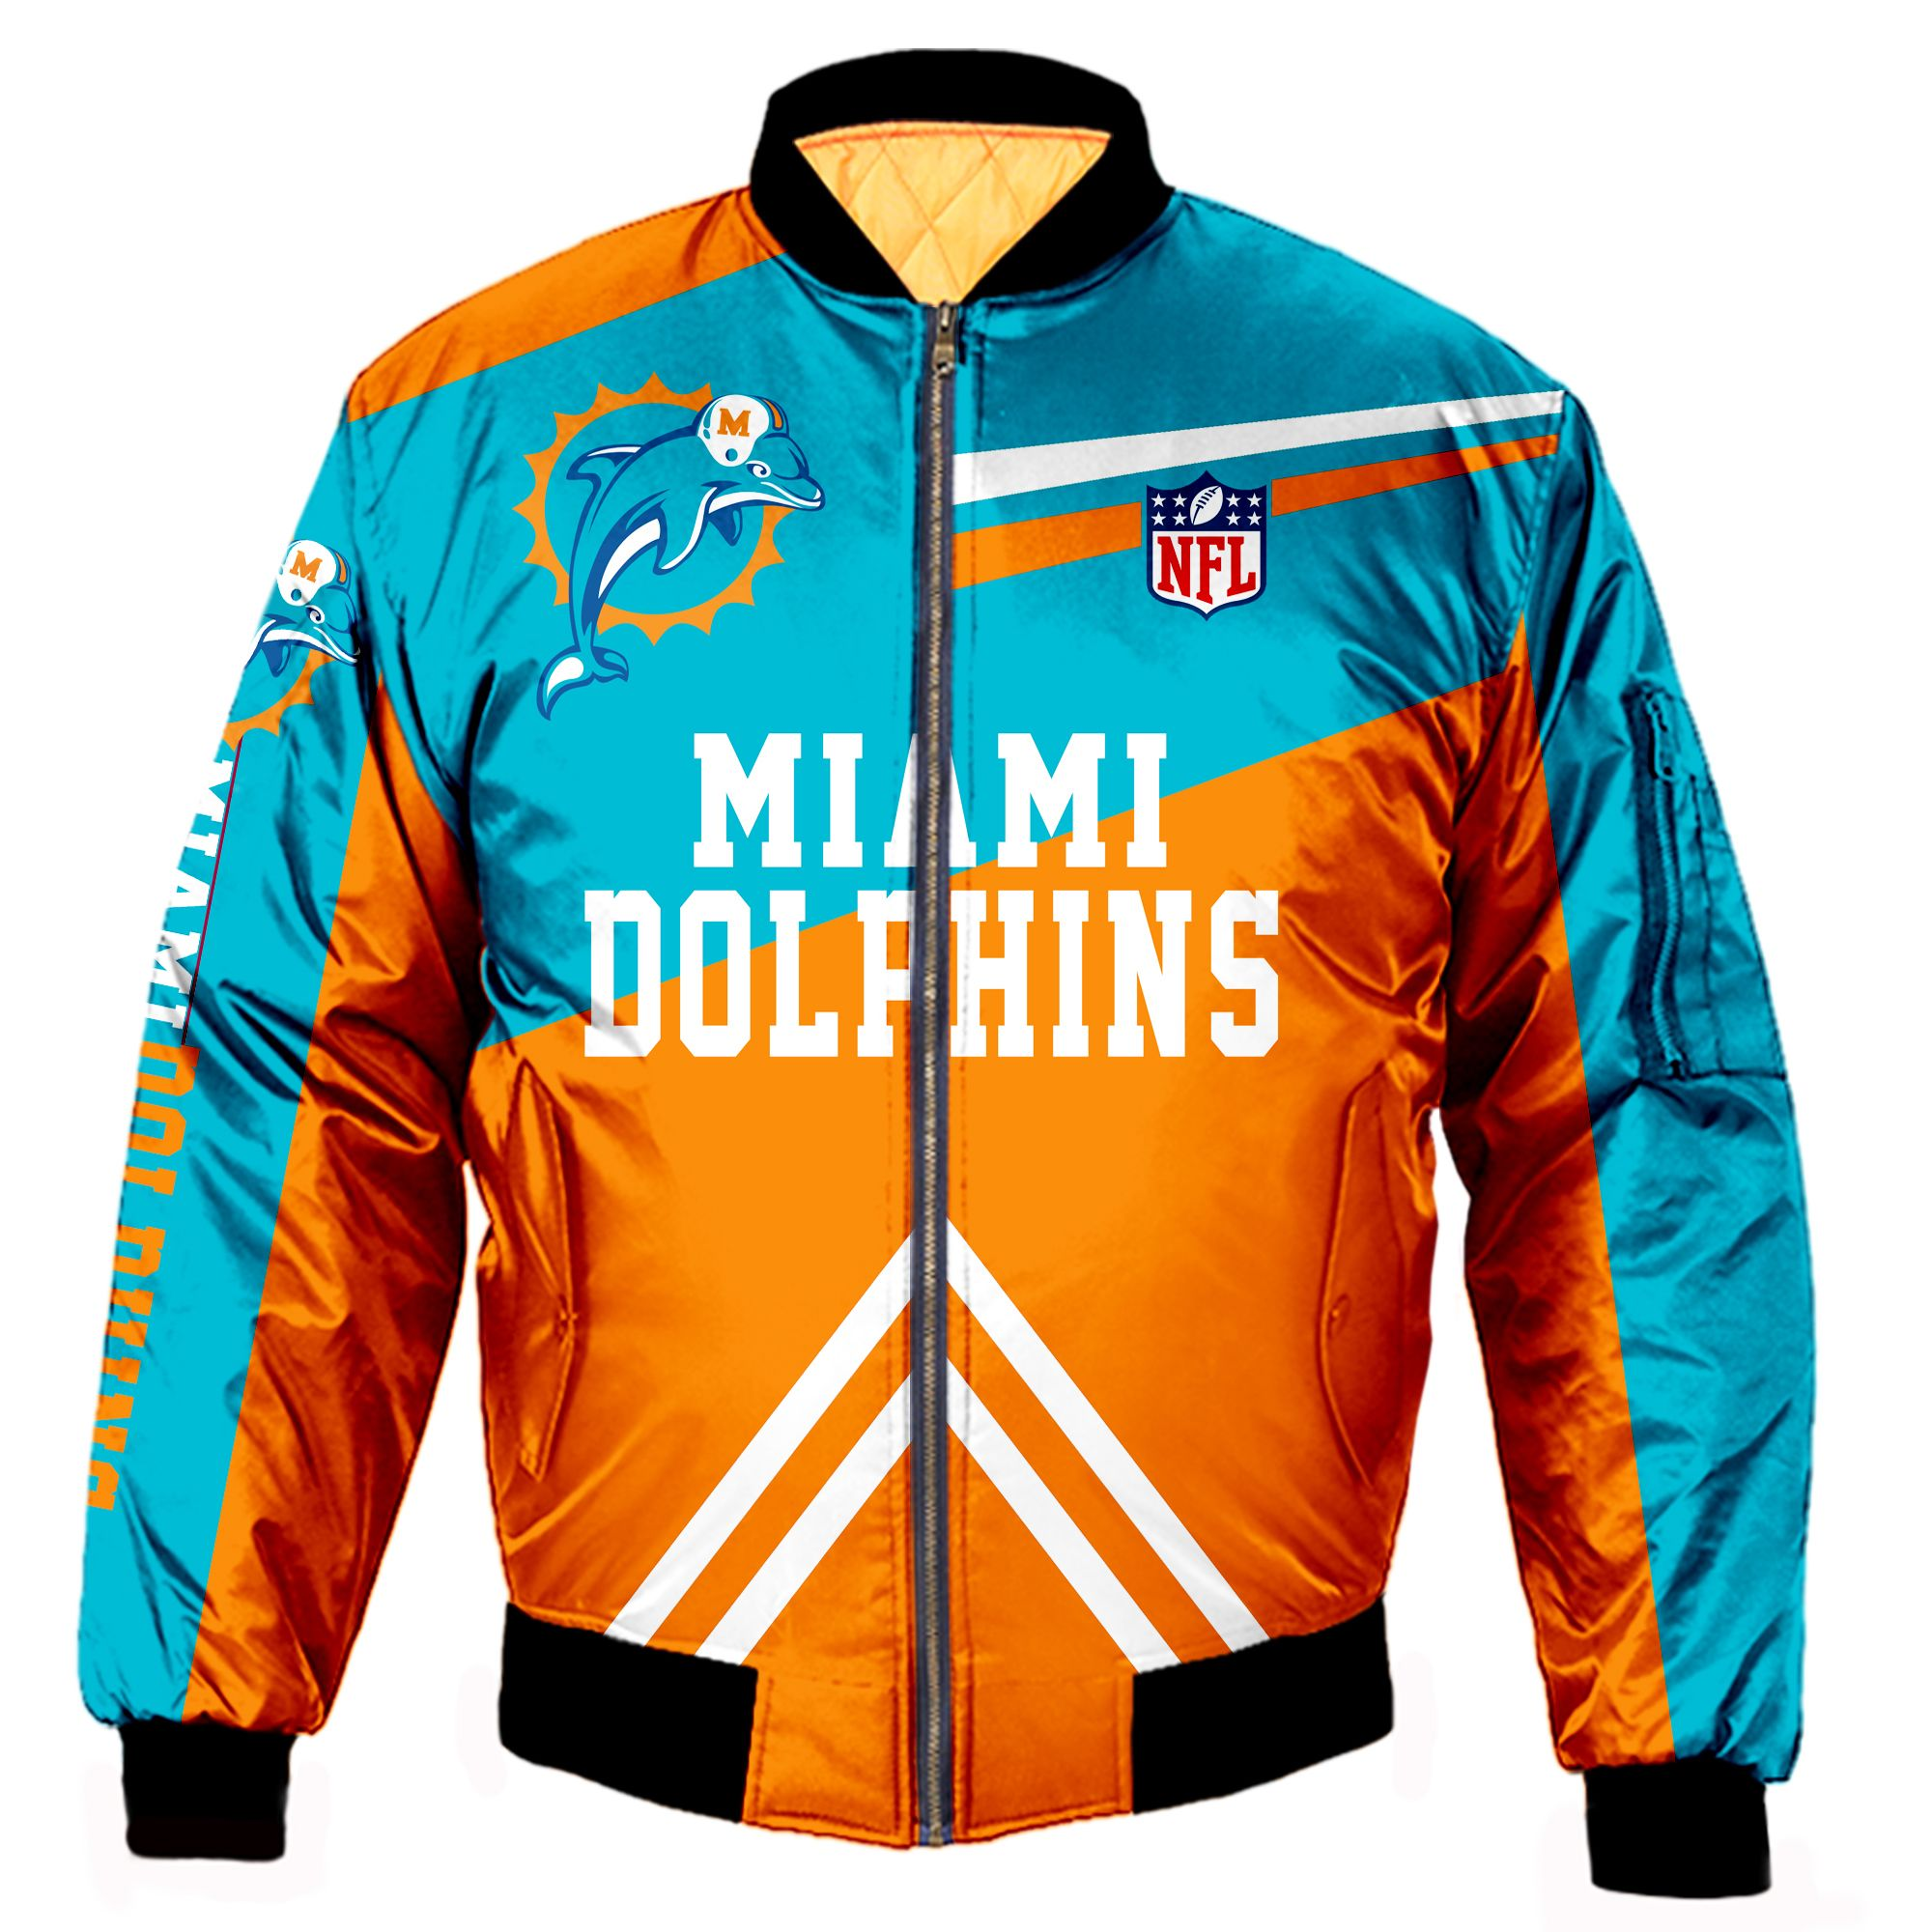 Miami Dolphins Bomber Jacket Men Women CottonPadded Air